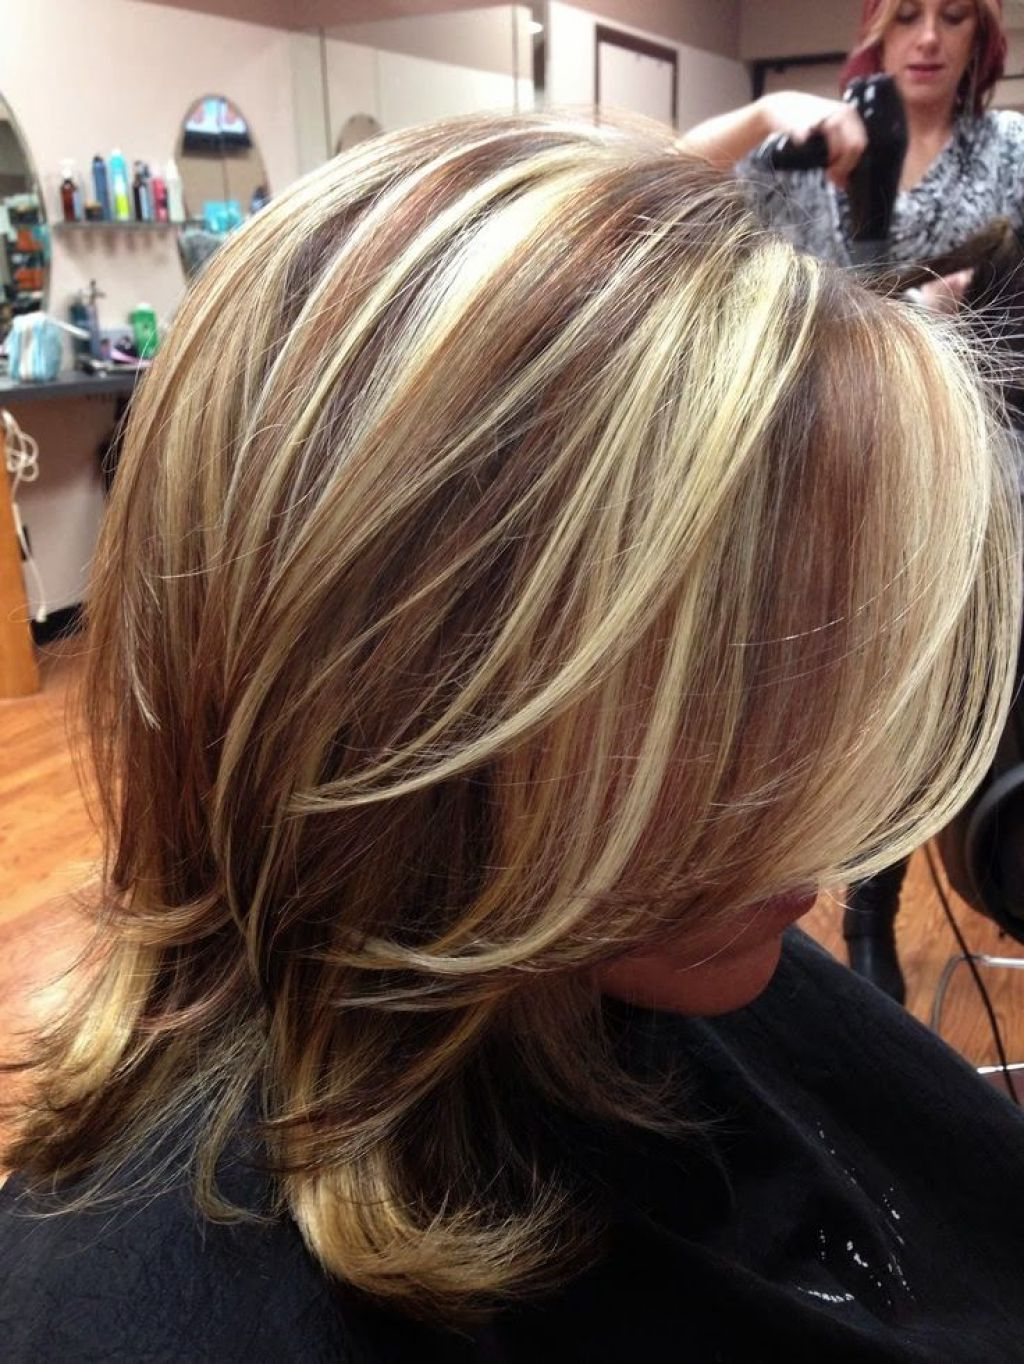 Medium Length Hairstyles With Blonde Highlights – Hairstyle For For Most Recent Medium Haircuts With Red Color (View 17 of 20)